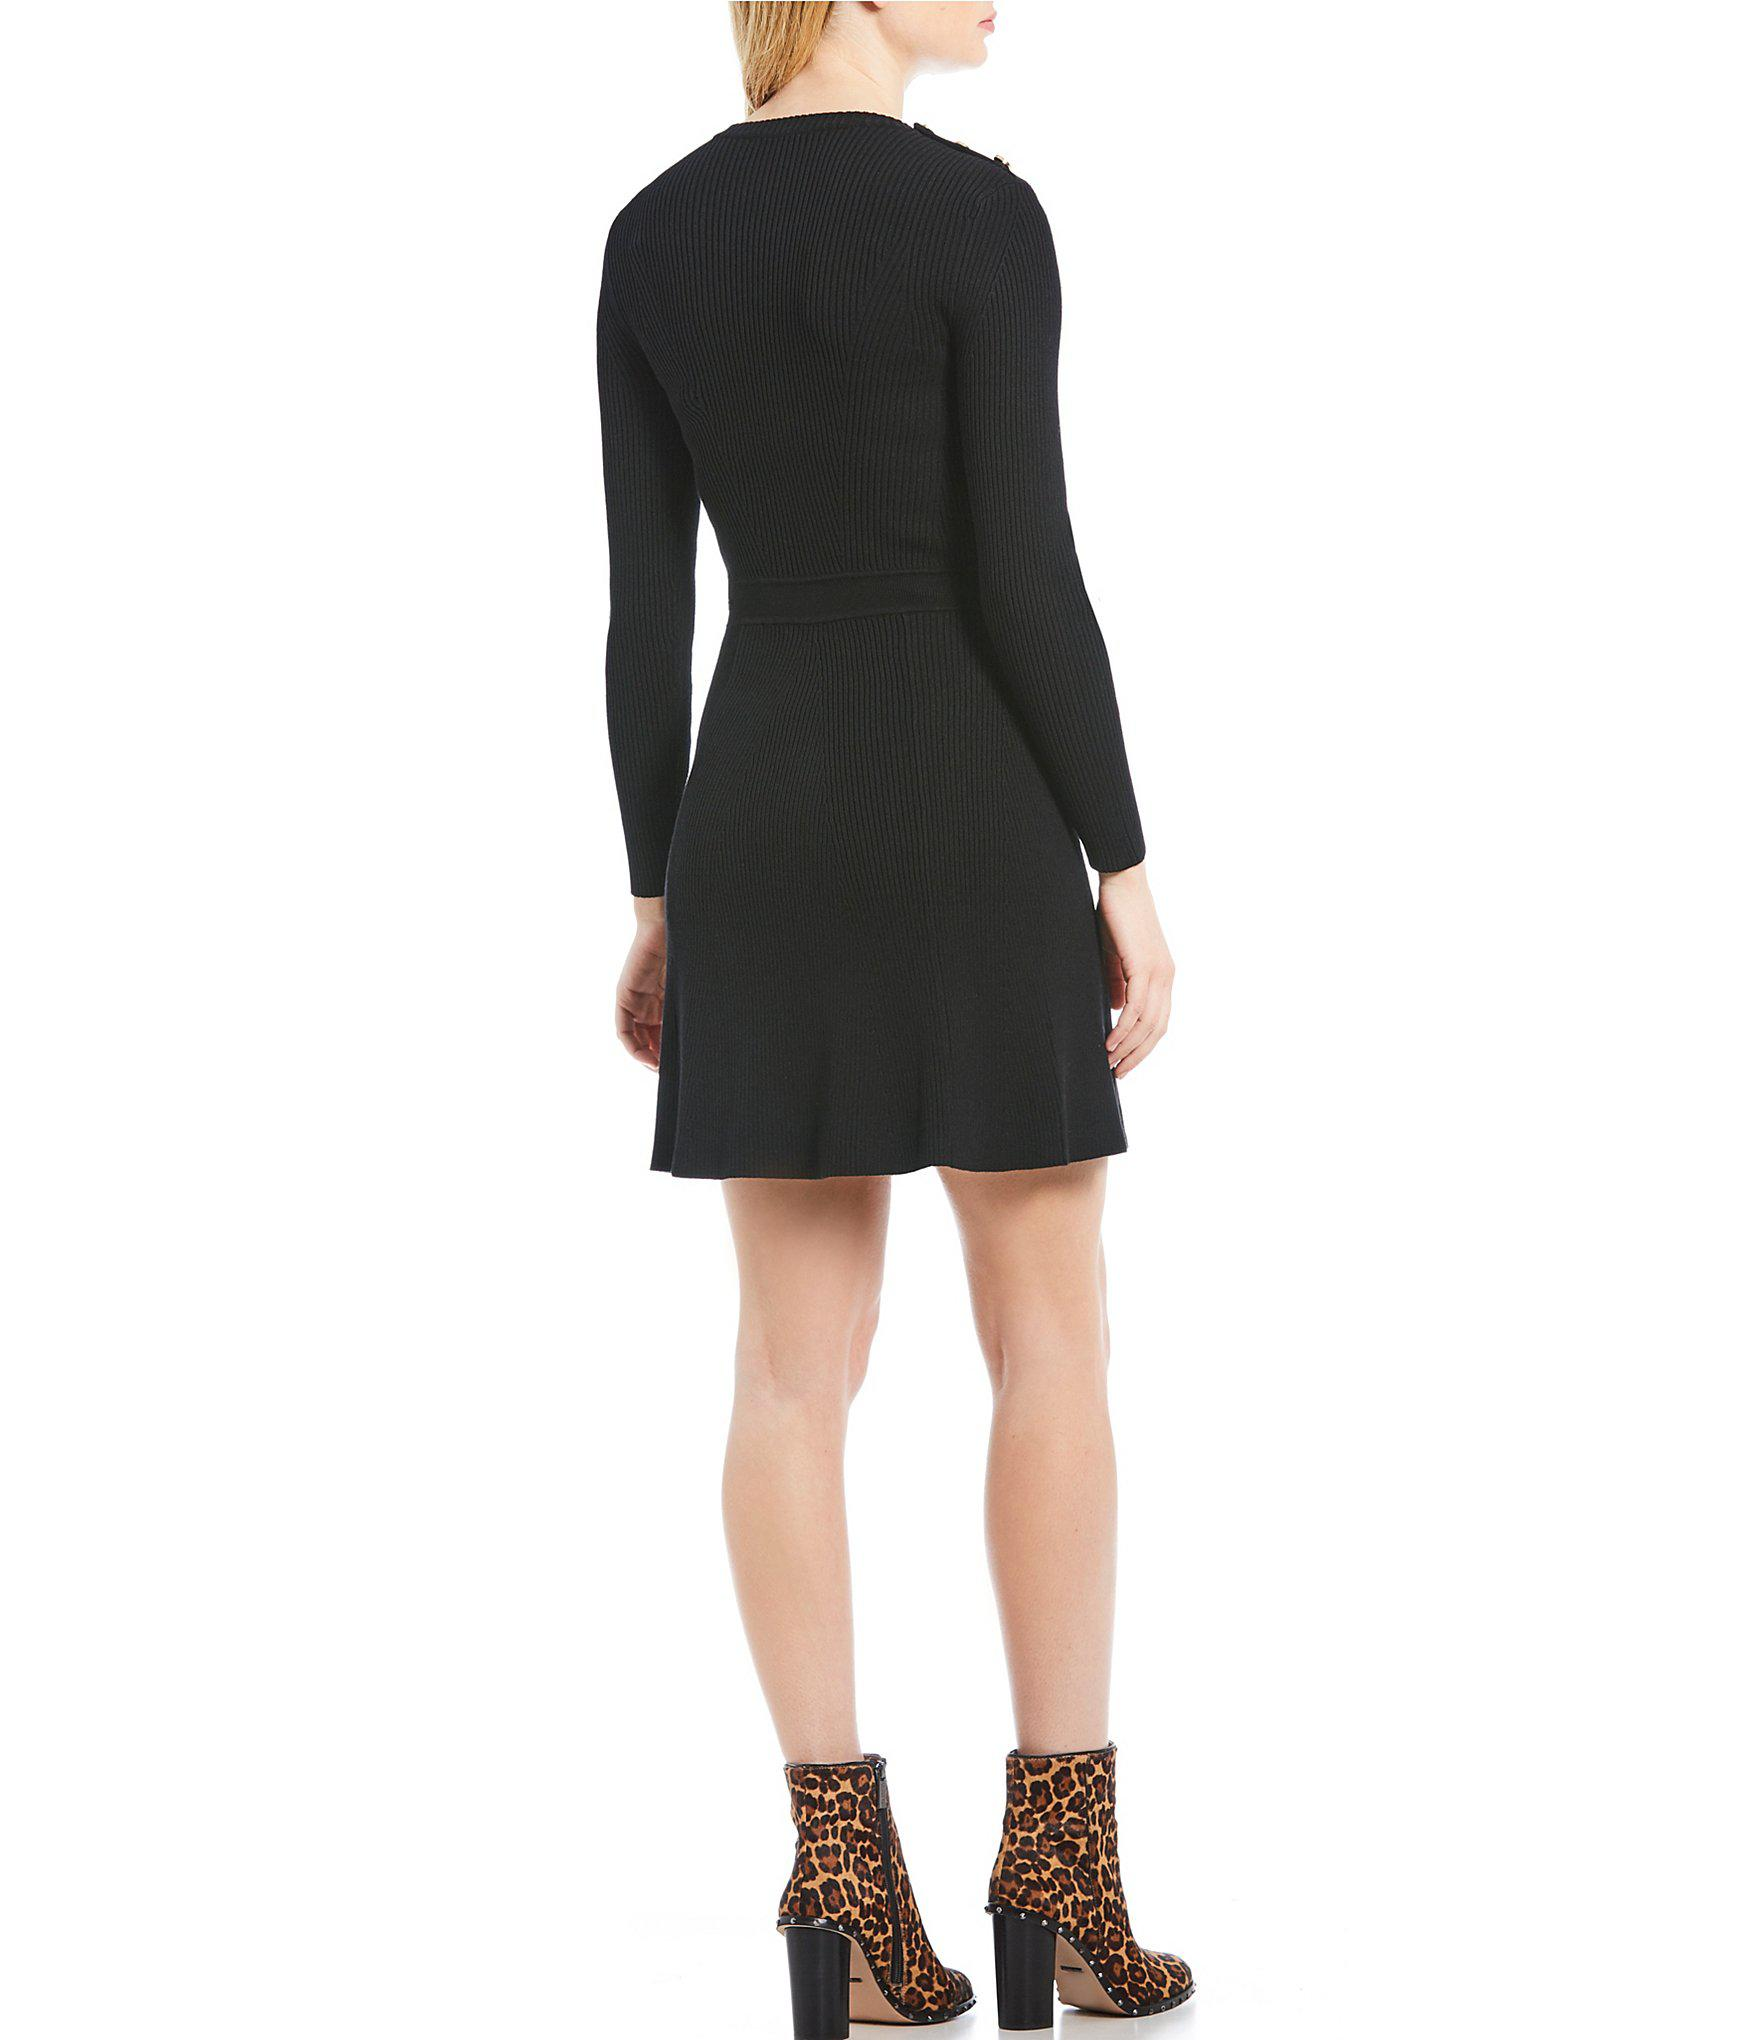 52a3aaa89d8 Gianni Bini - Black Hazel A-line Sweater Dress - Lyst. View fullscreen